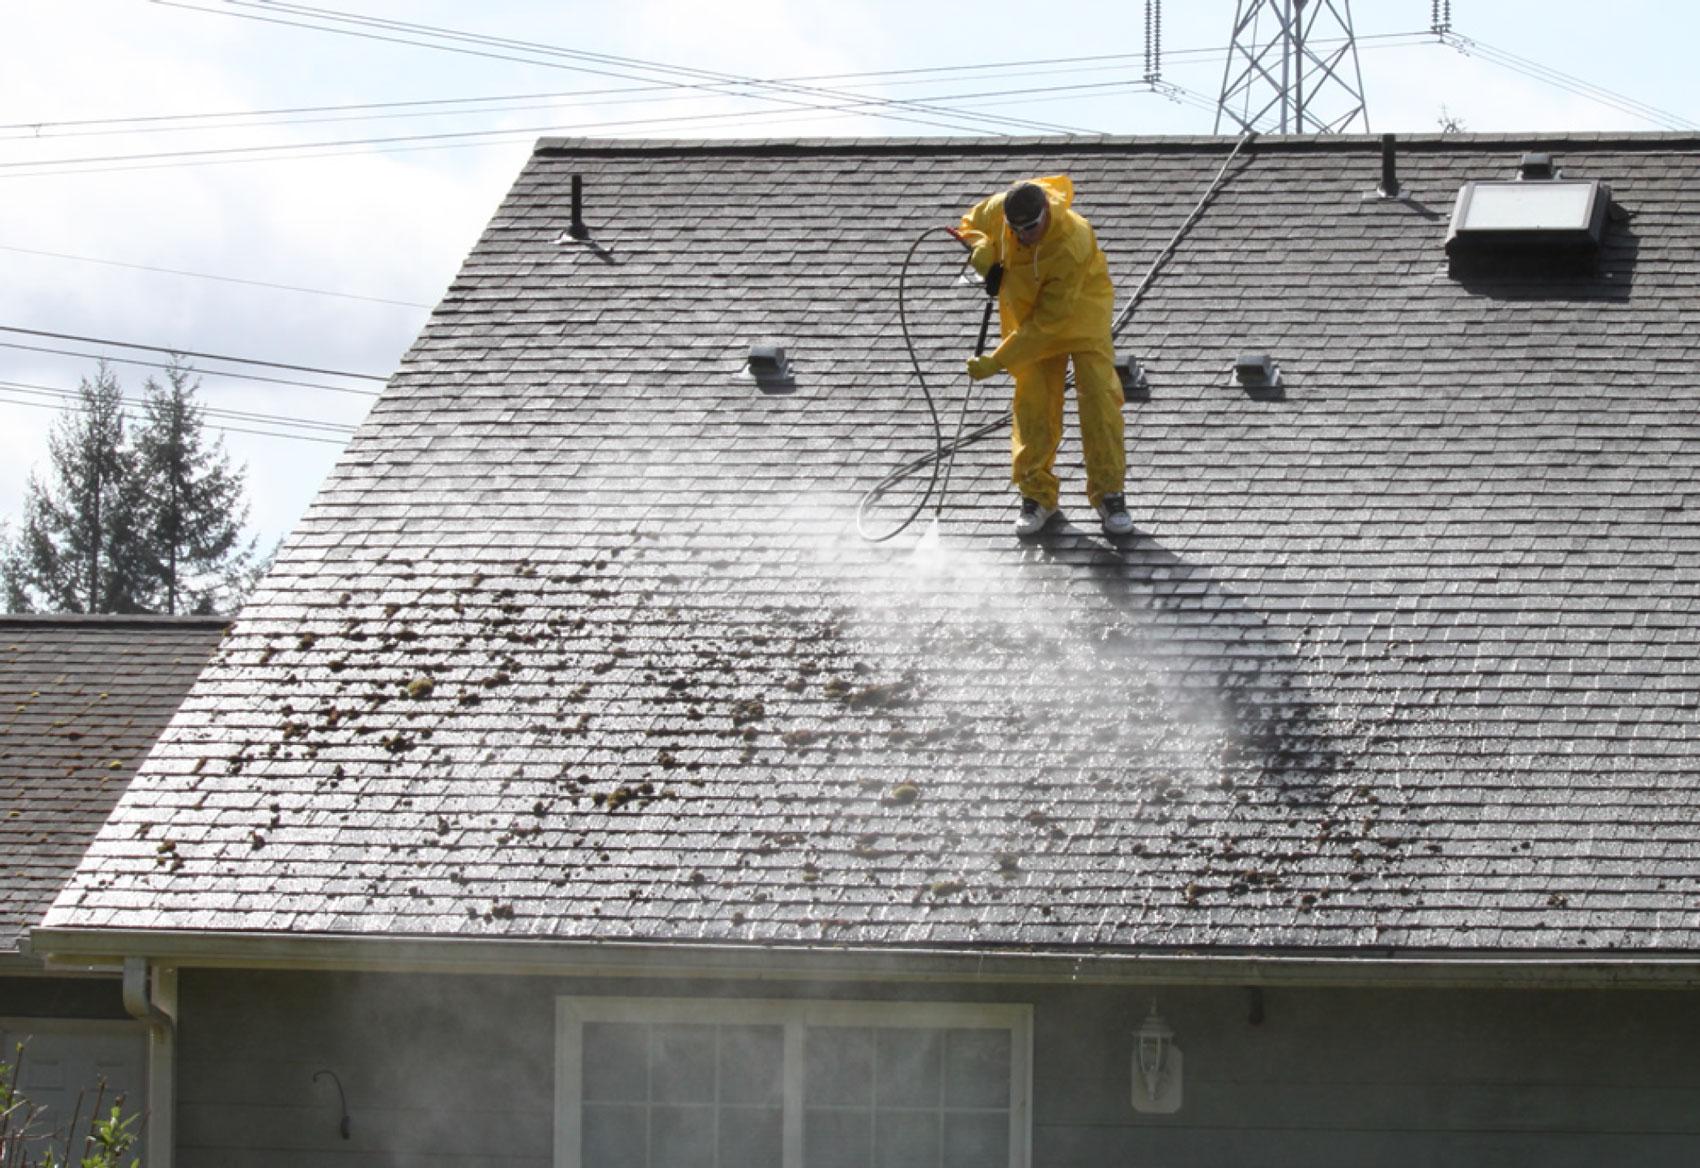 Why Not Pressure Wash Your Cedar or Shingle Roof